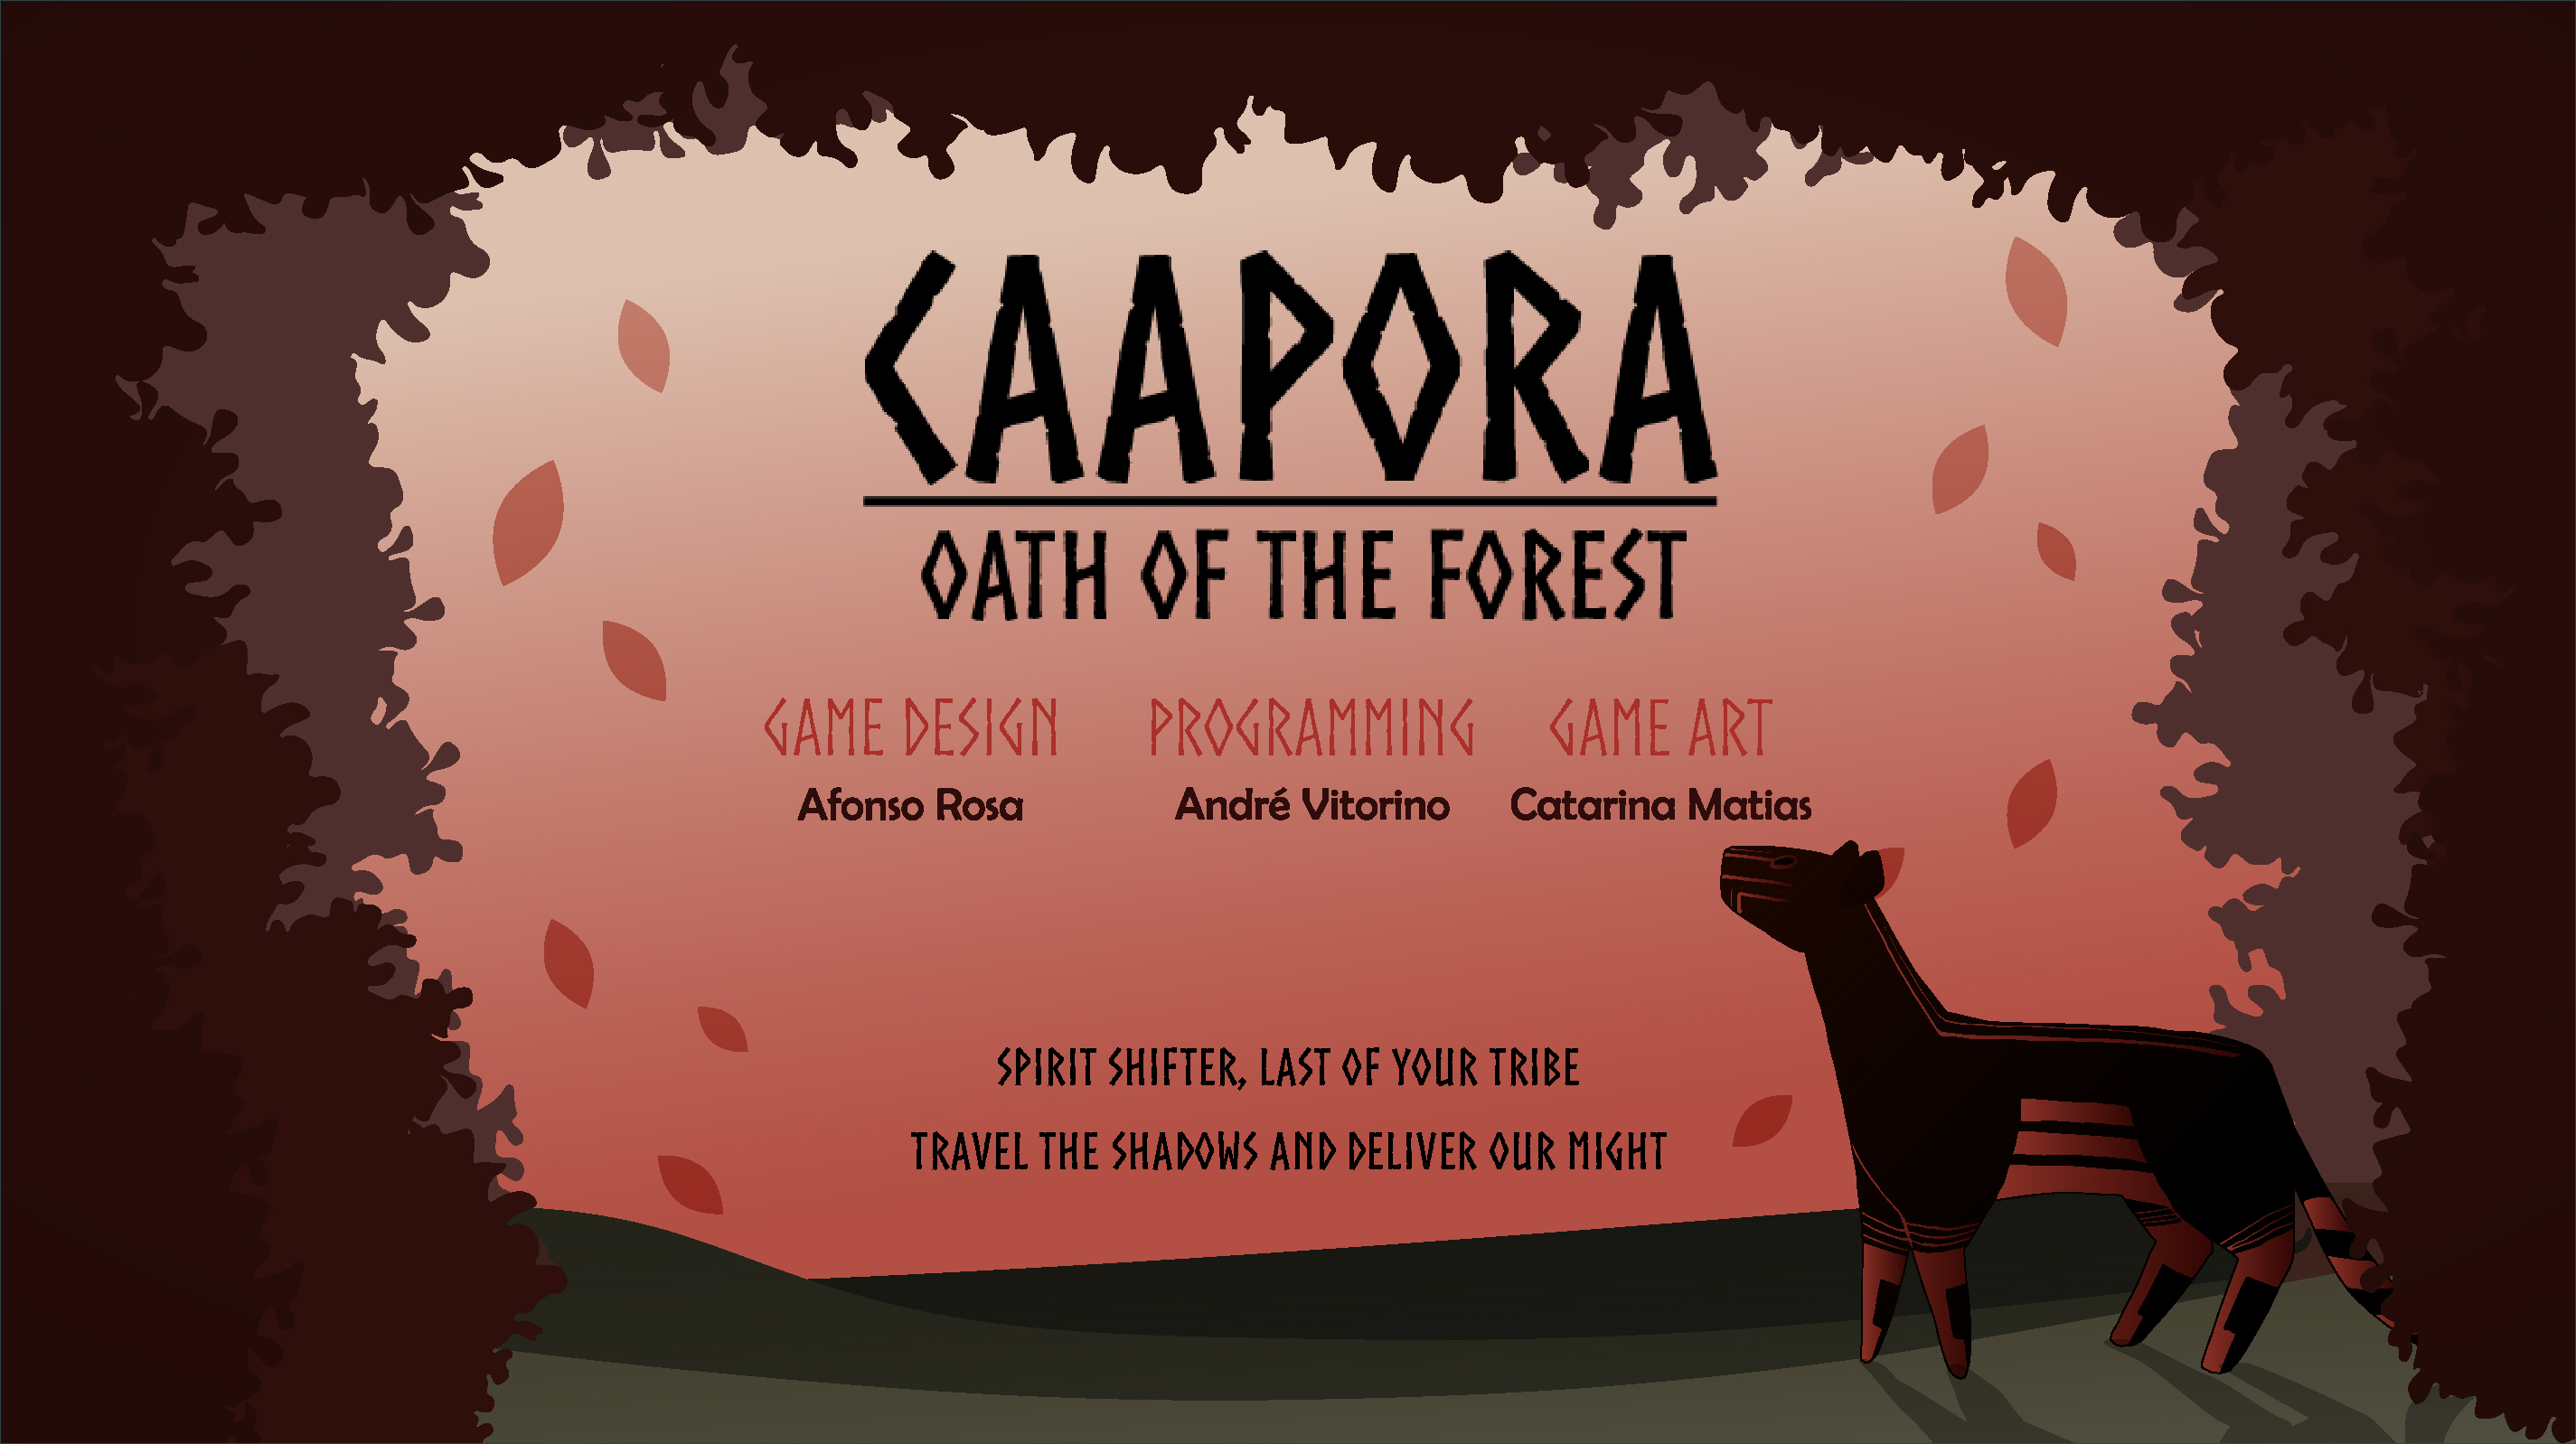 Caapora - Oath of the Forest Introduction Credits